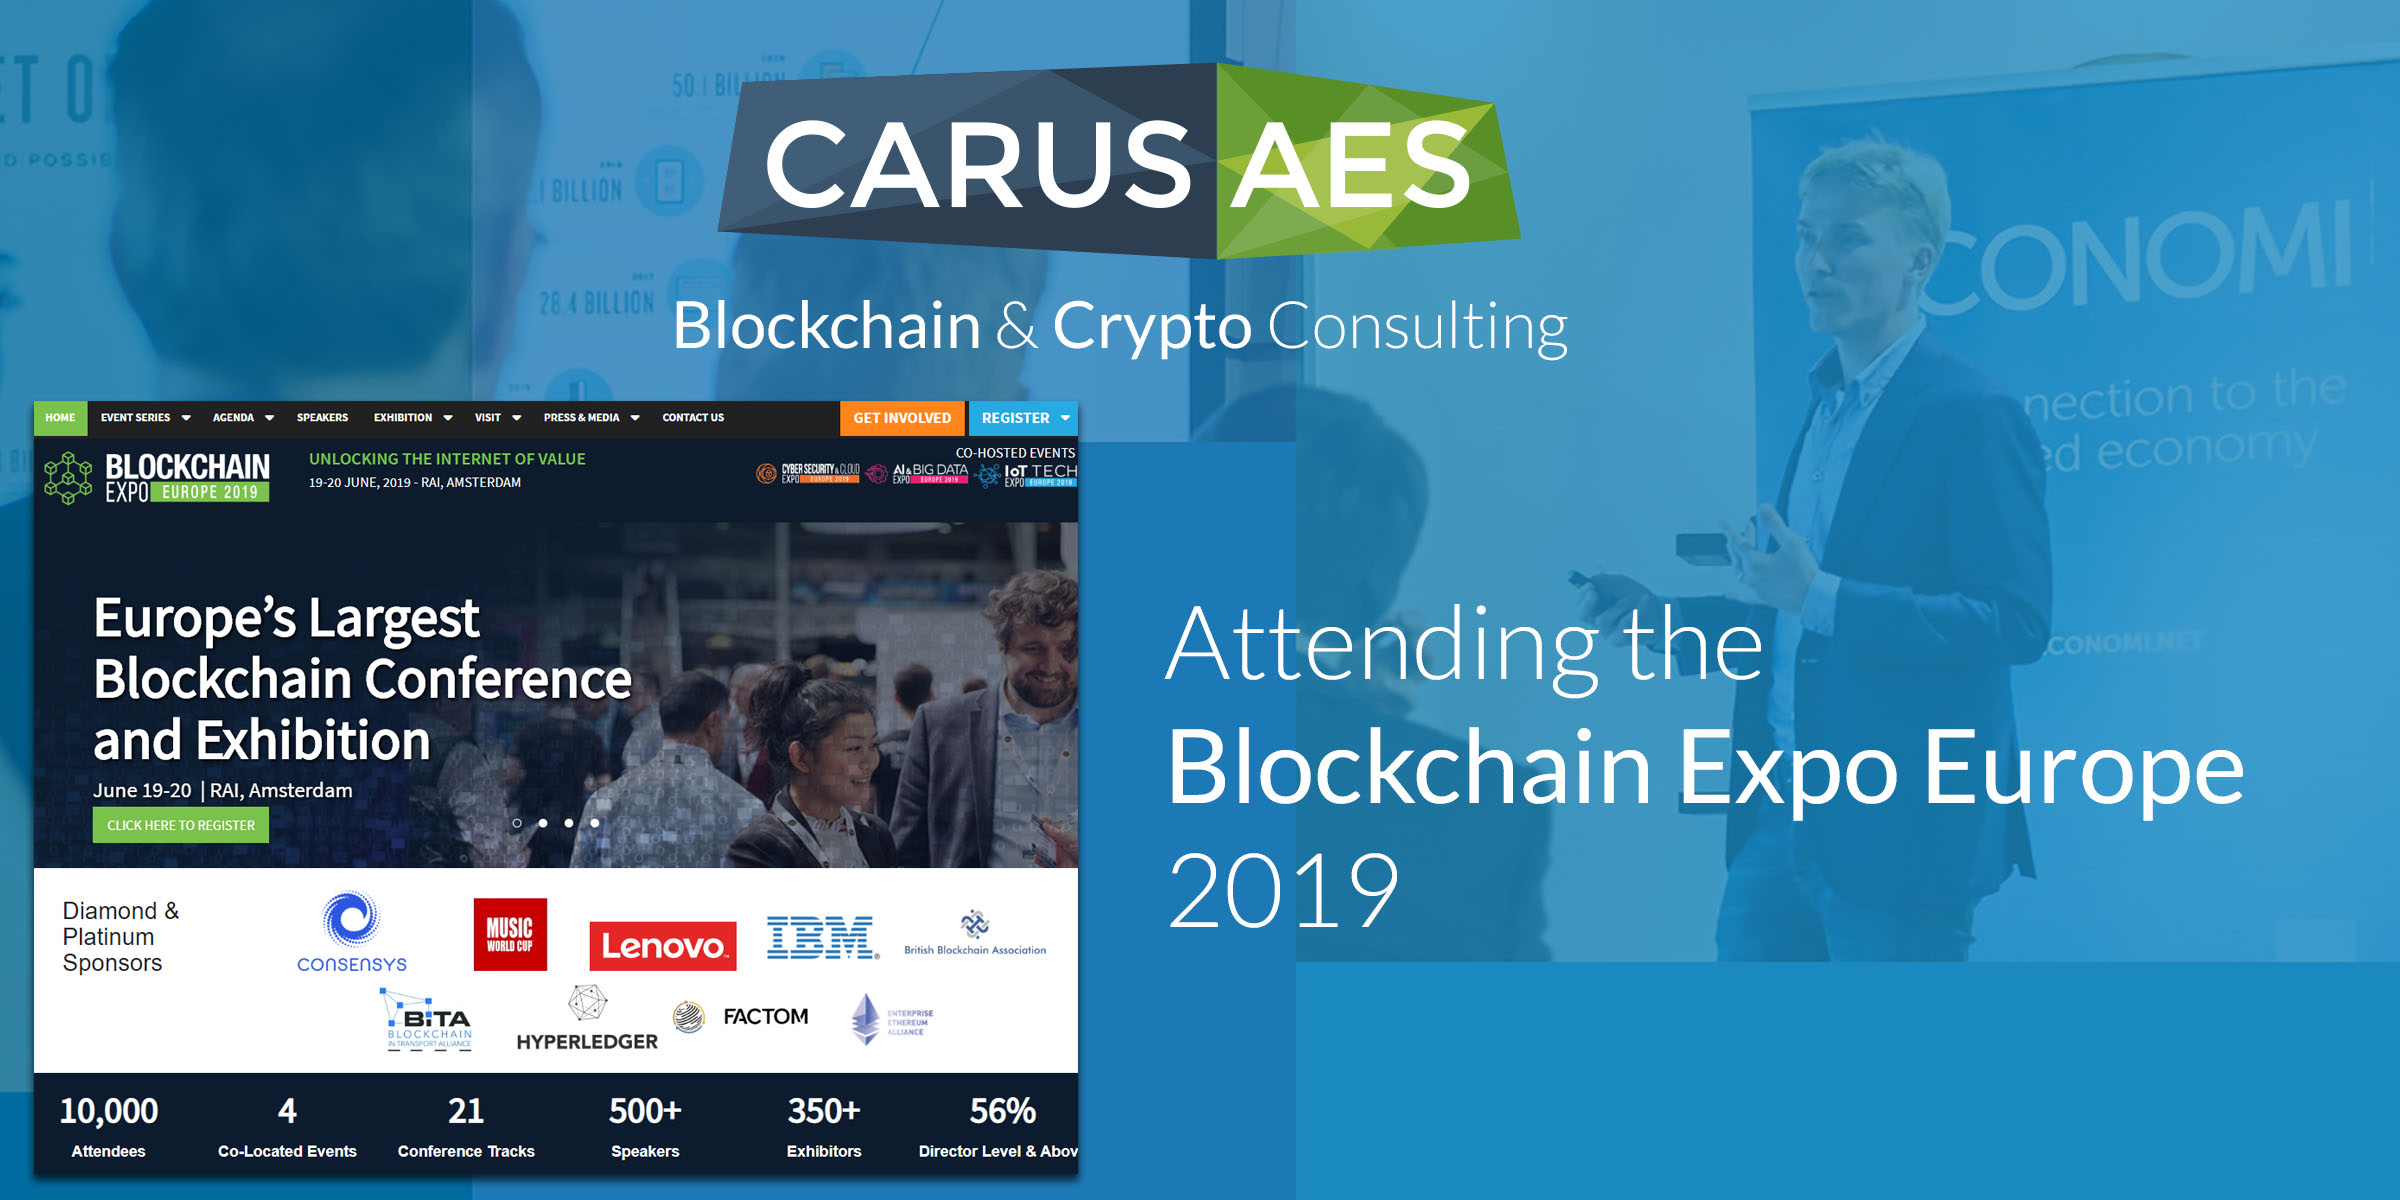 CarusAes and CARUS-AR Attending the Blockchain Expo Europe 2019